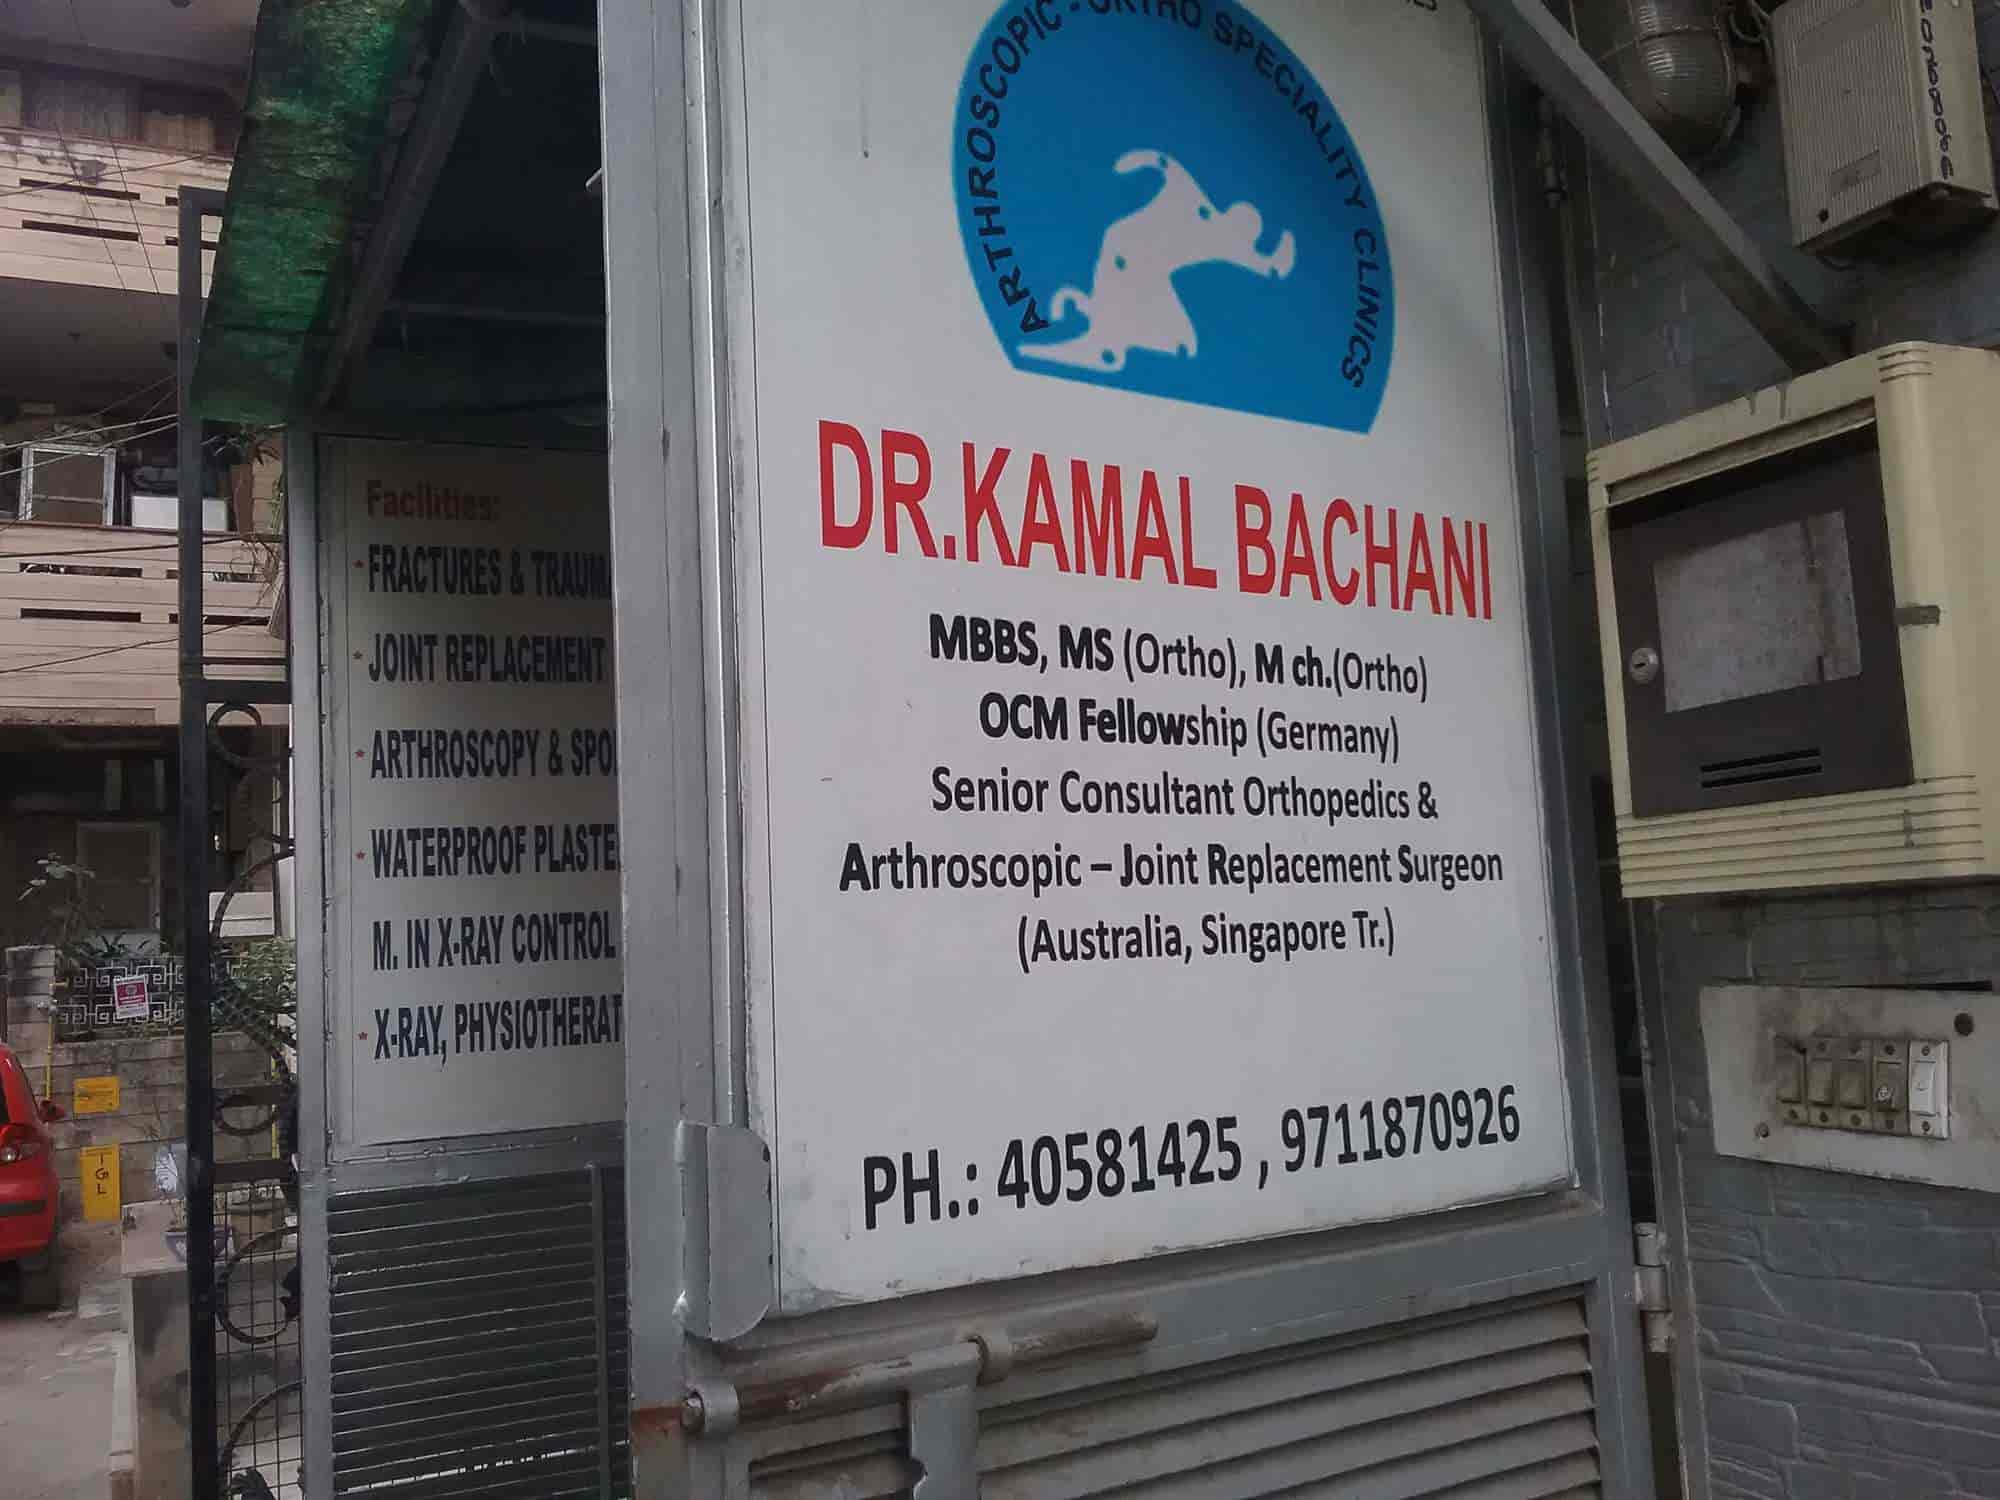 Dr kamal Bachani - Orthopaedic Doctors - Book Appointment Online